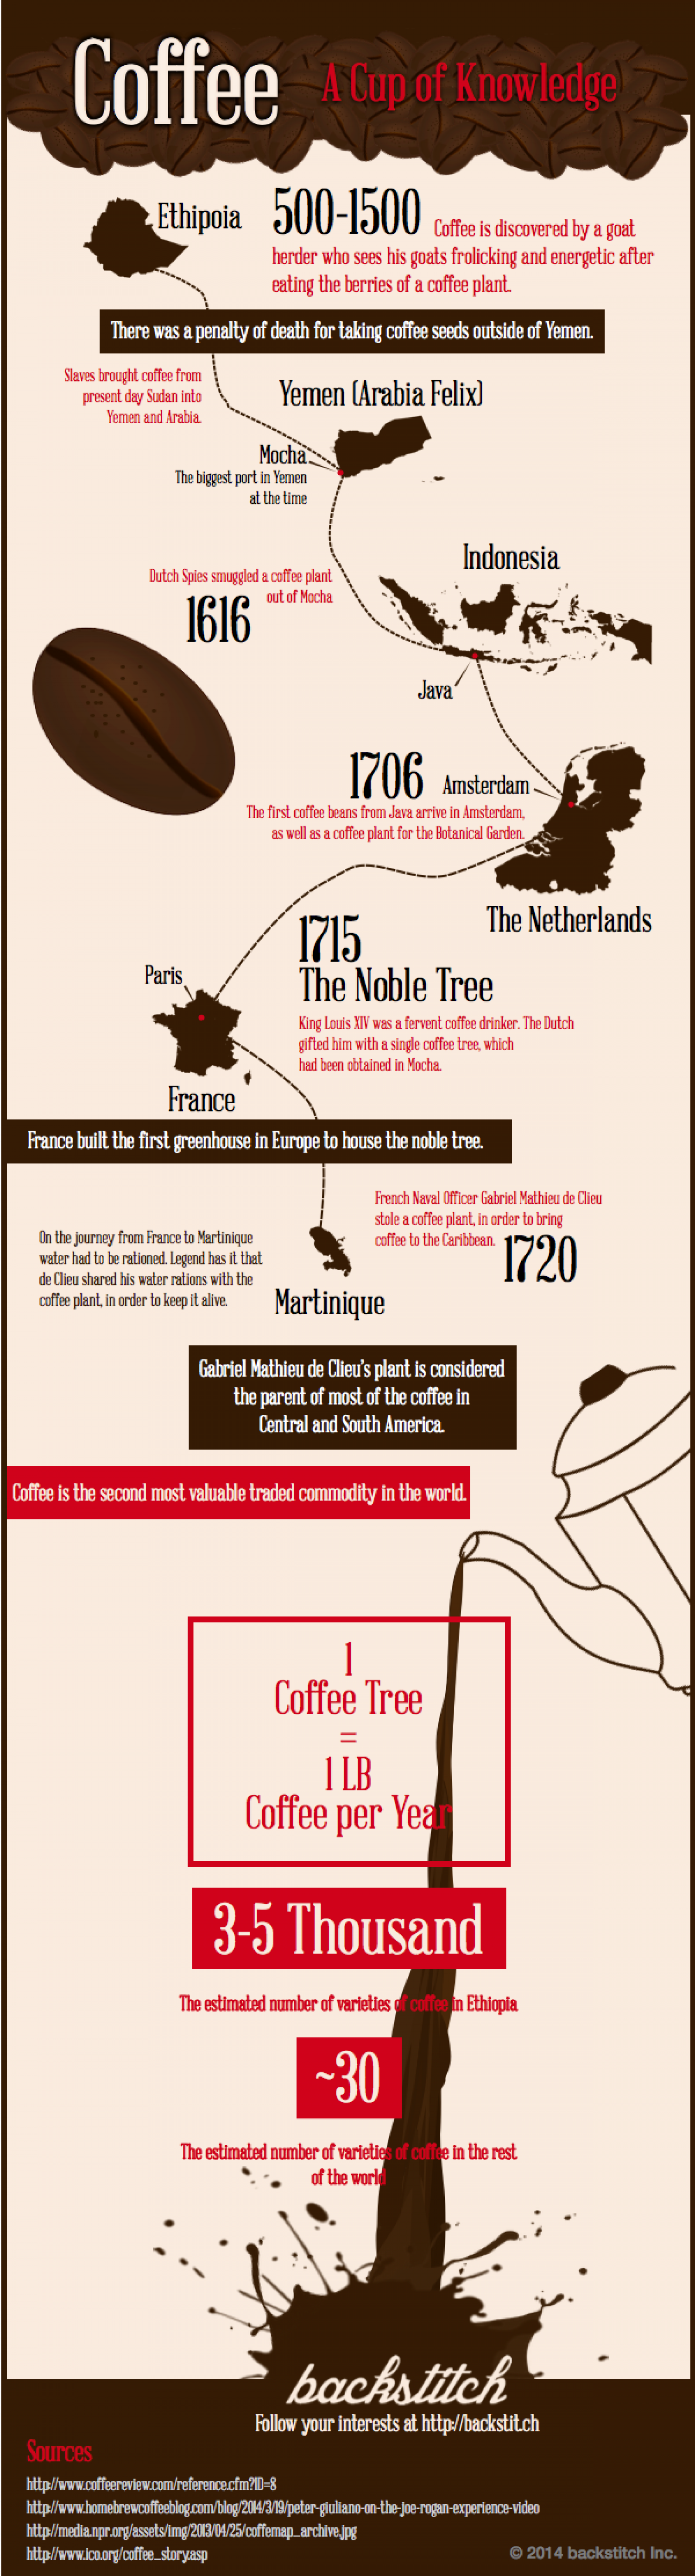 Coffee: A Cup of Knowledge Infographic